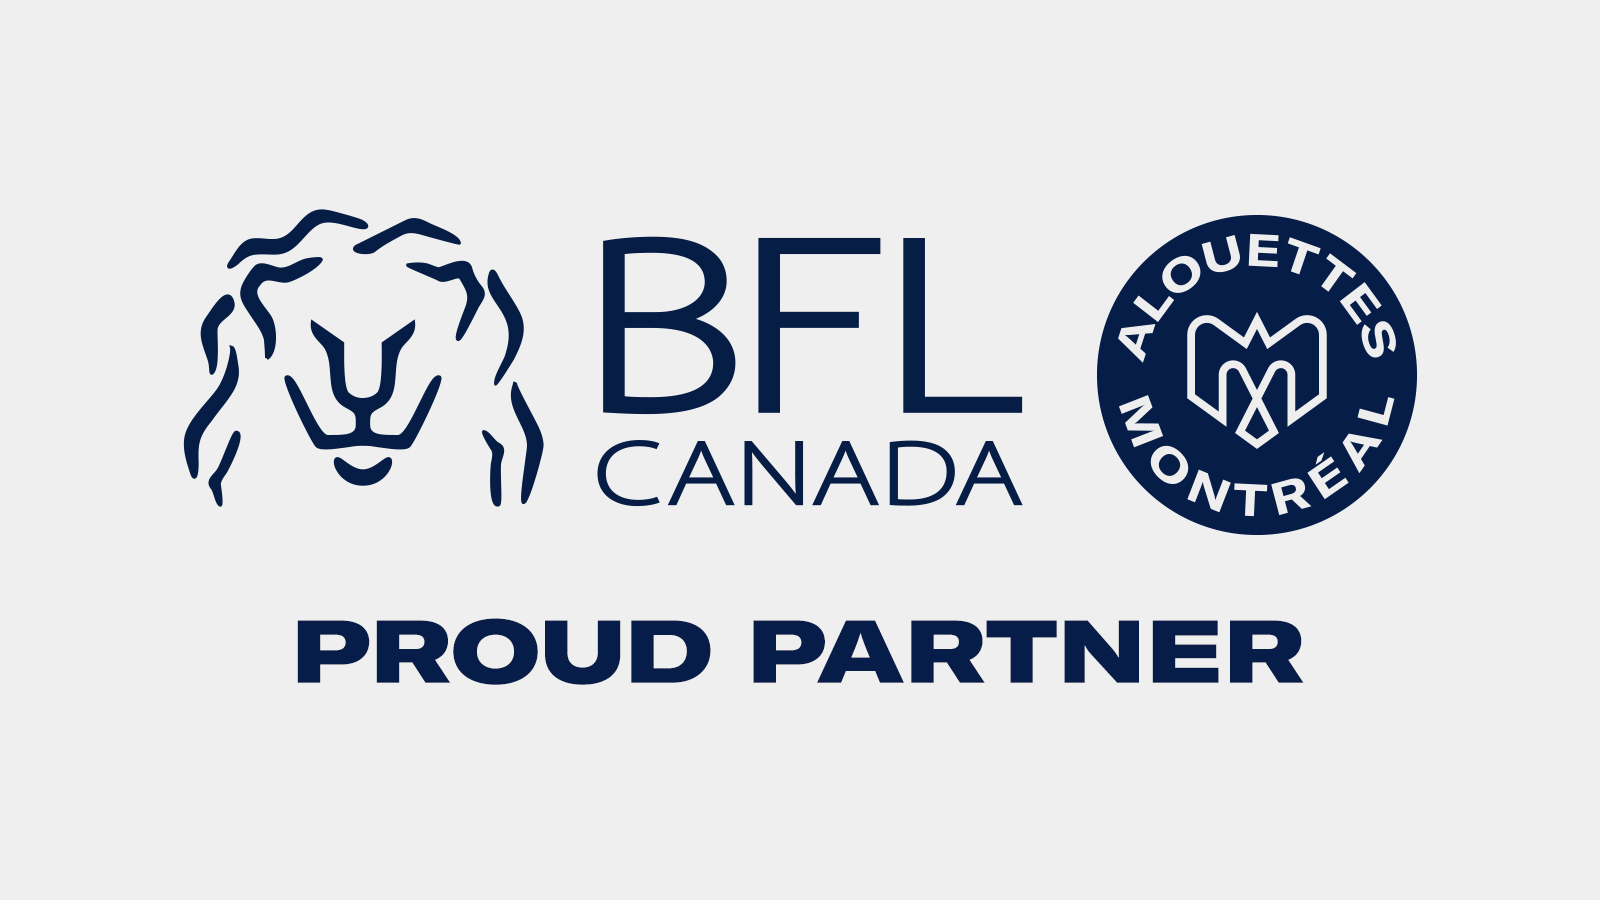 The Montreal Alouettes team up with BFL CANADA